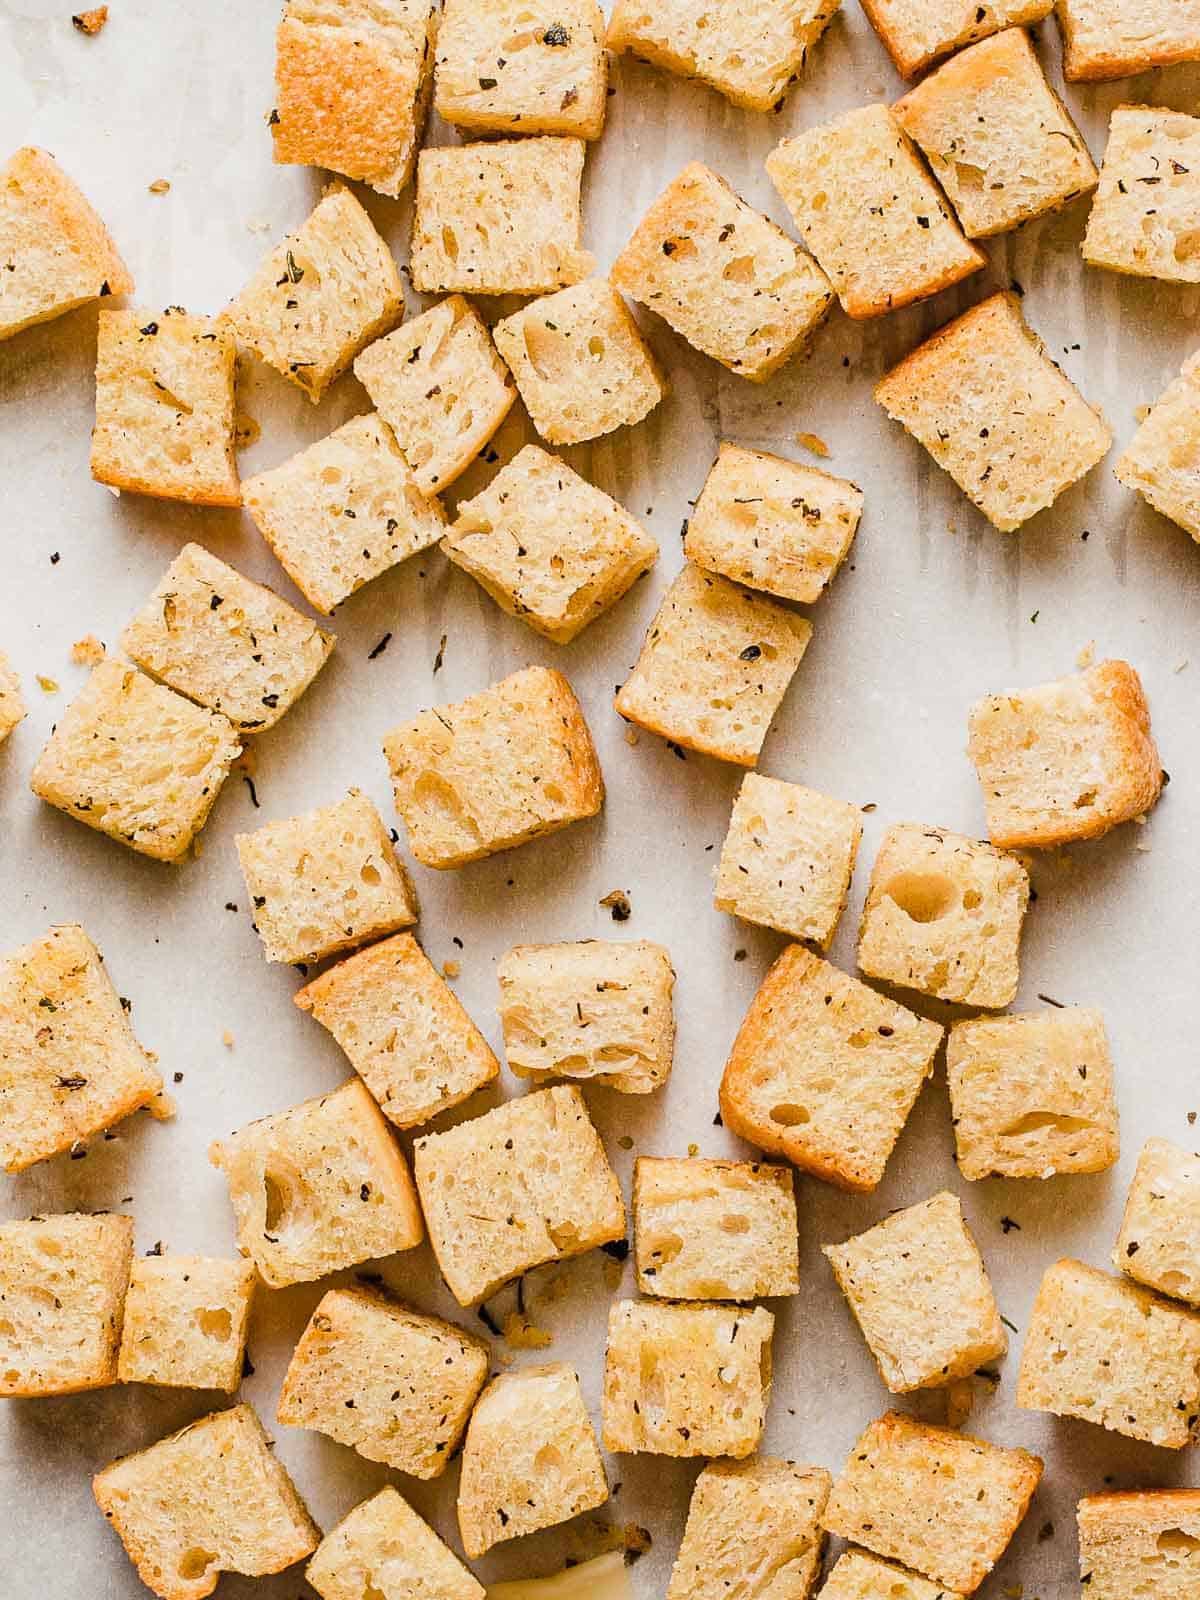 Homemade croutons on parchment paper.